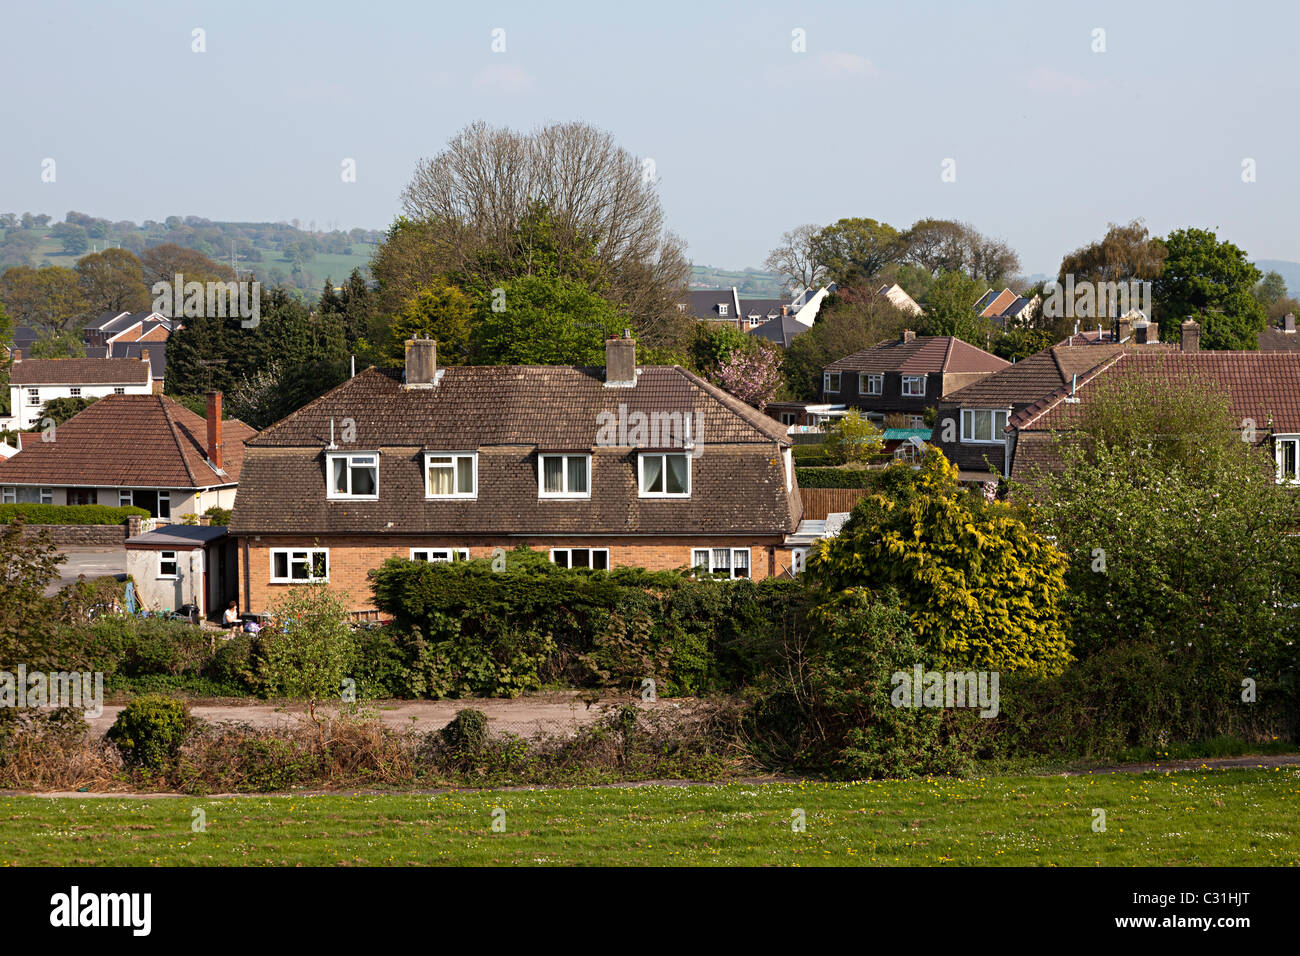 Housing estate in village Llanfoist Wales UK Stock Photo